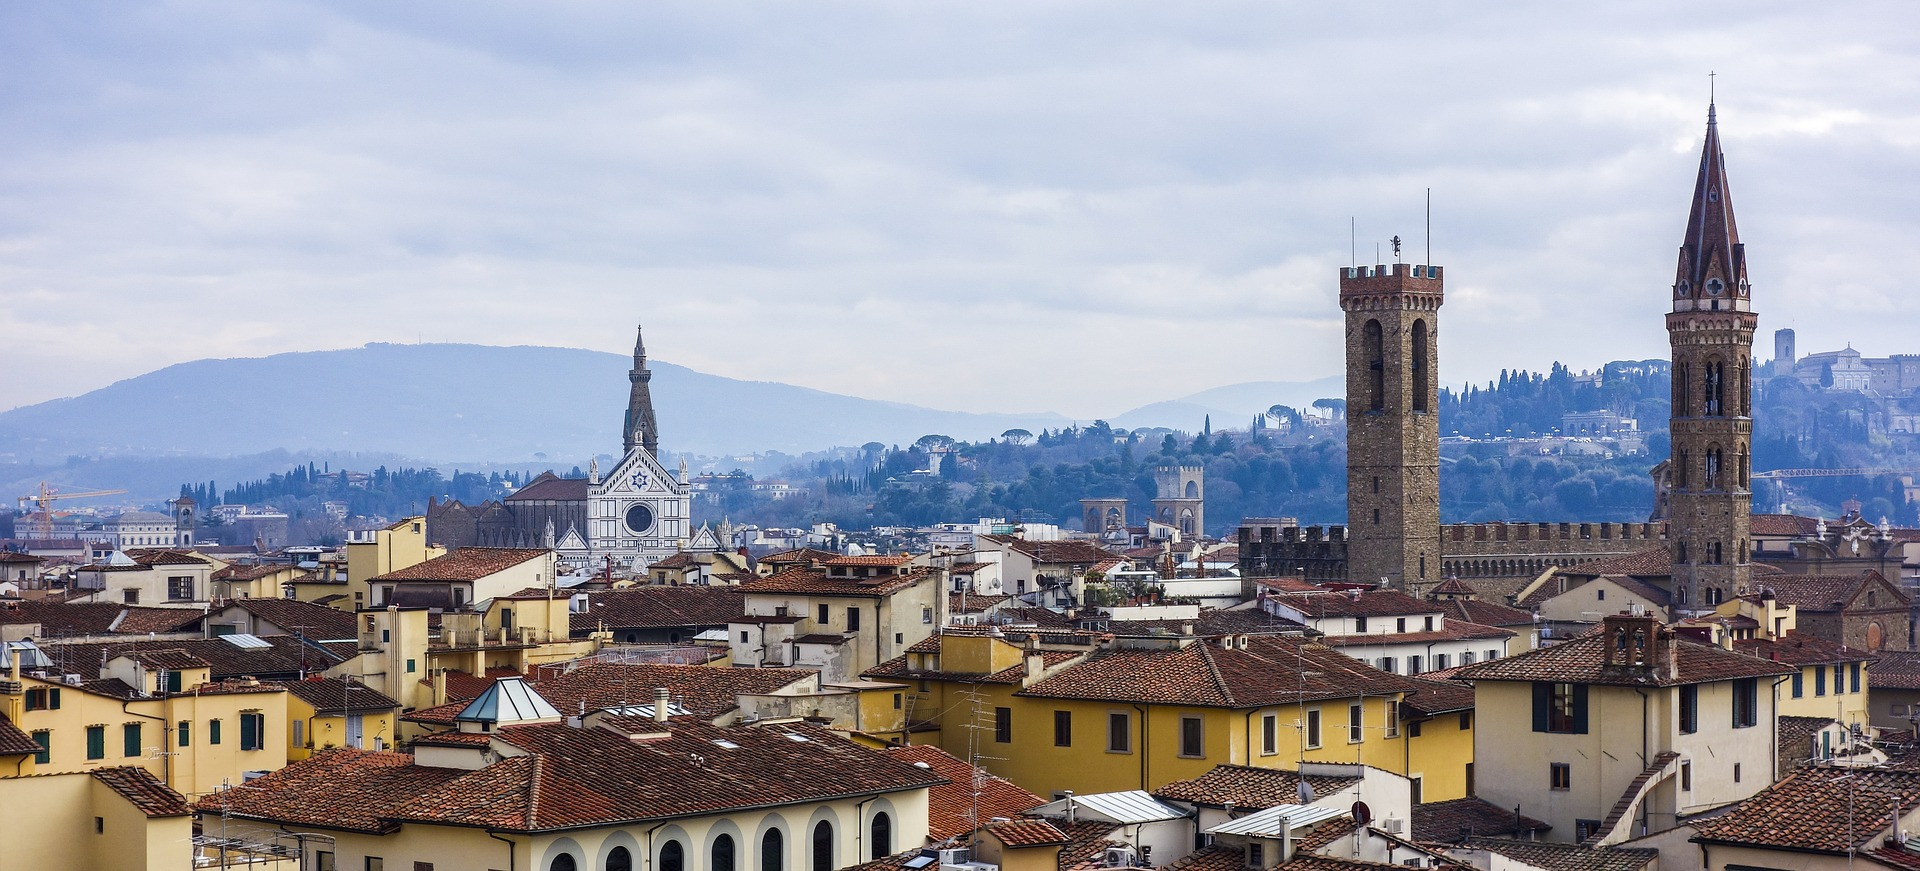 florence-1647406_1920